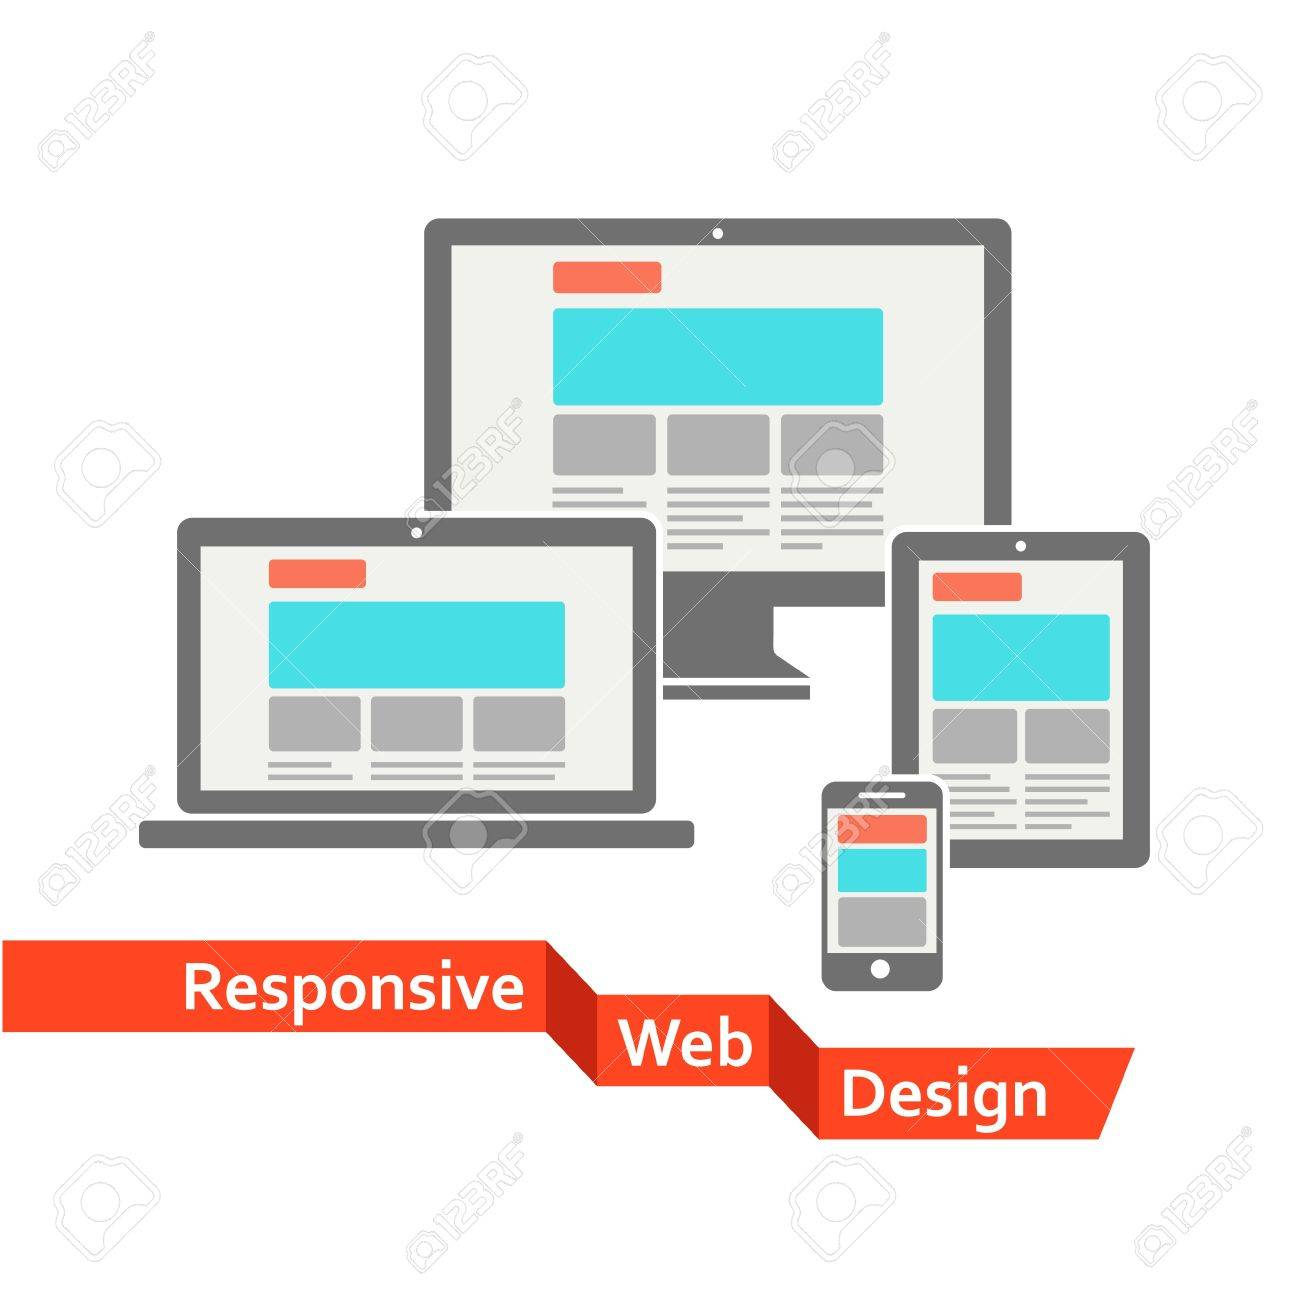 Responsive web design Stock Vector - 20307456